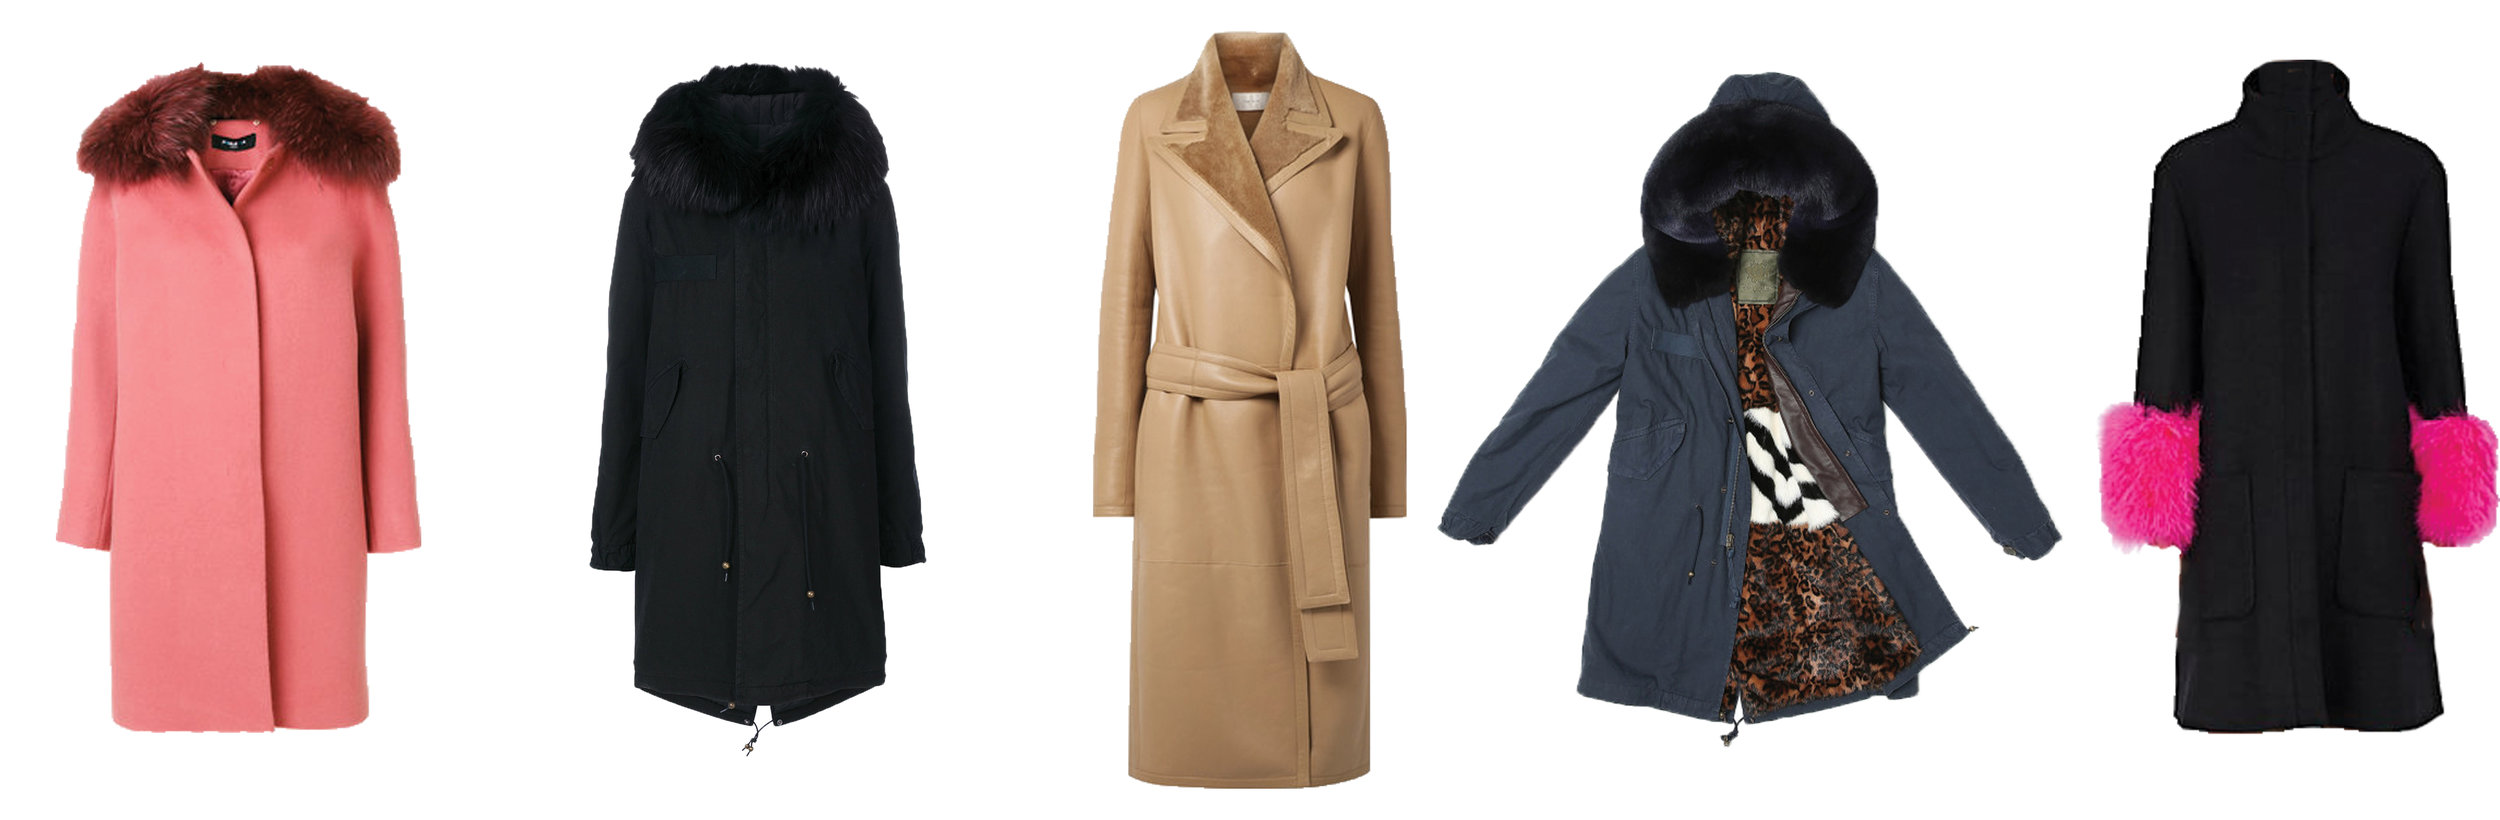 From left, Paule Ka Fur Trim  Coat  | Mr & Mrs Italy Fur  Parka  | The Row Cintry Shearling  Trench  | Mrs & Mrs Italy Fur  Parka  | Lisa Perry Feather-Trimmed Wool  Coat